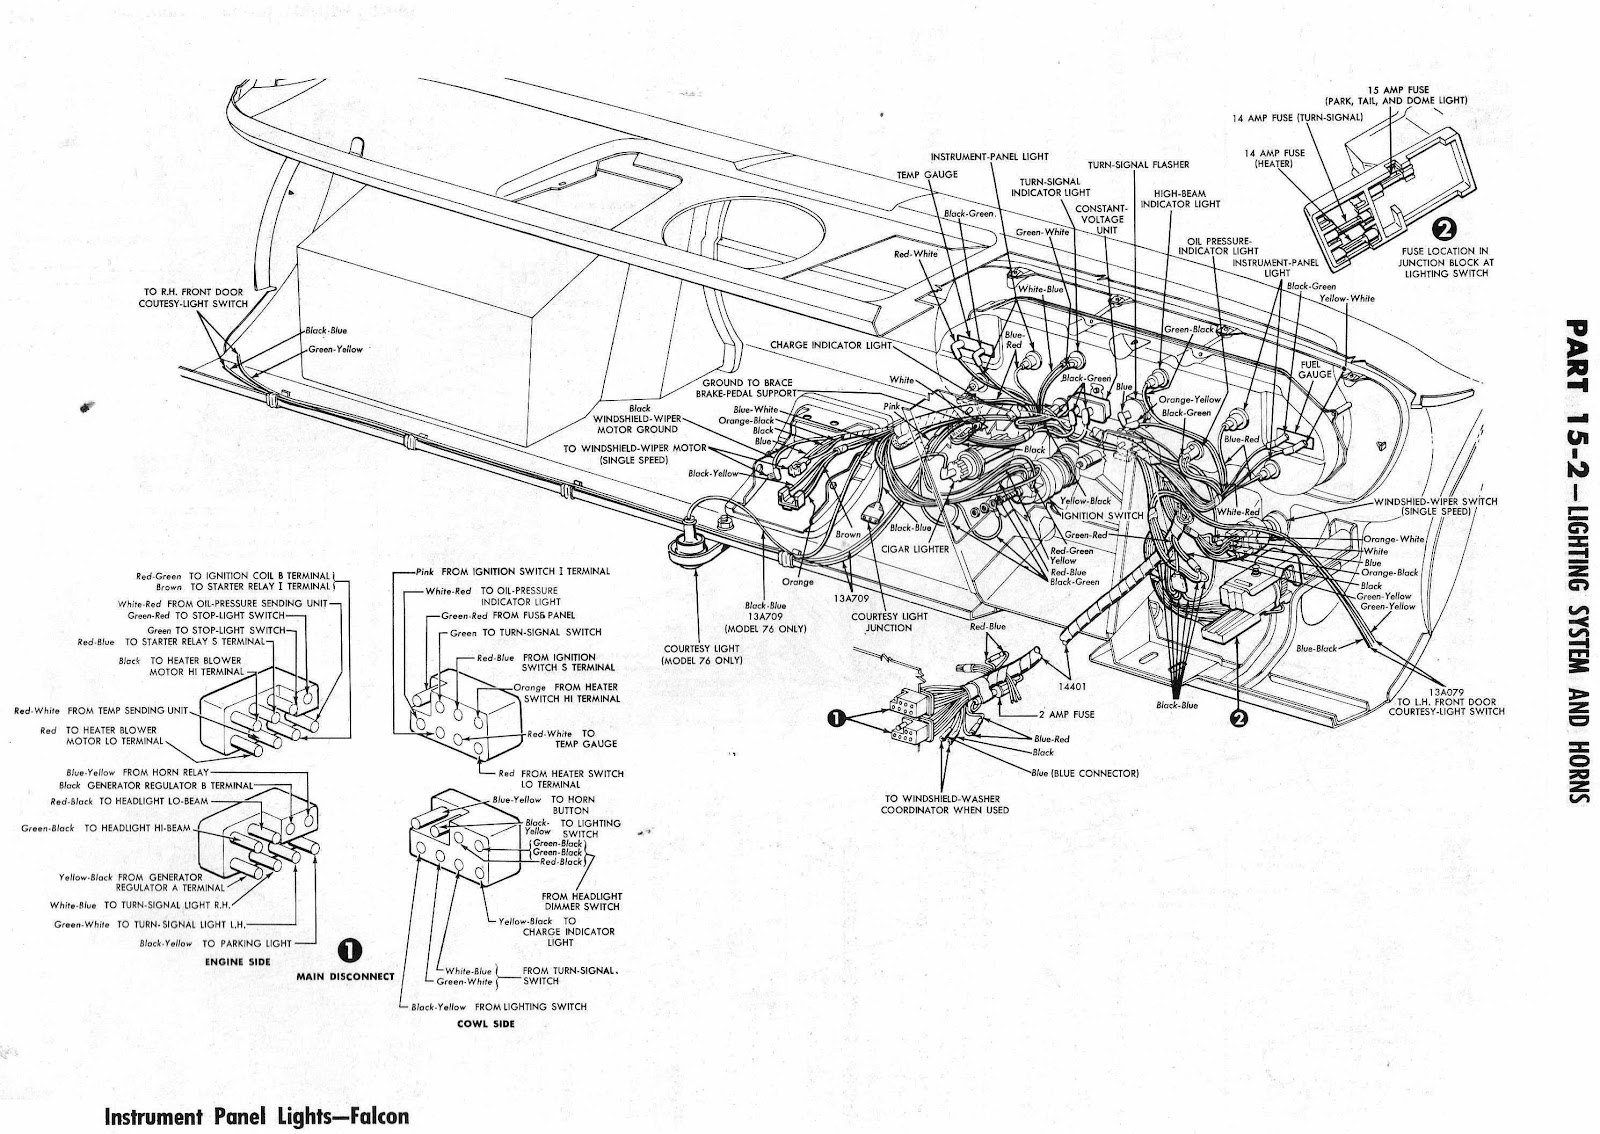 Ford+Falcon+1964+Lighting+System+and+Horns+Wiring+Diagram au falcon wiring diagram falcon guide \u2022 wiring diagrams j squared co  at cos-gaming.co